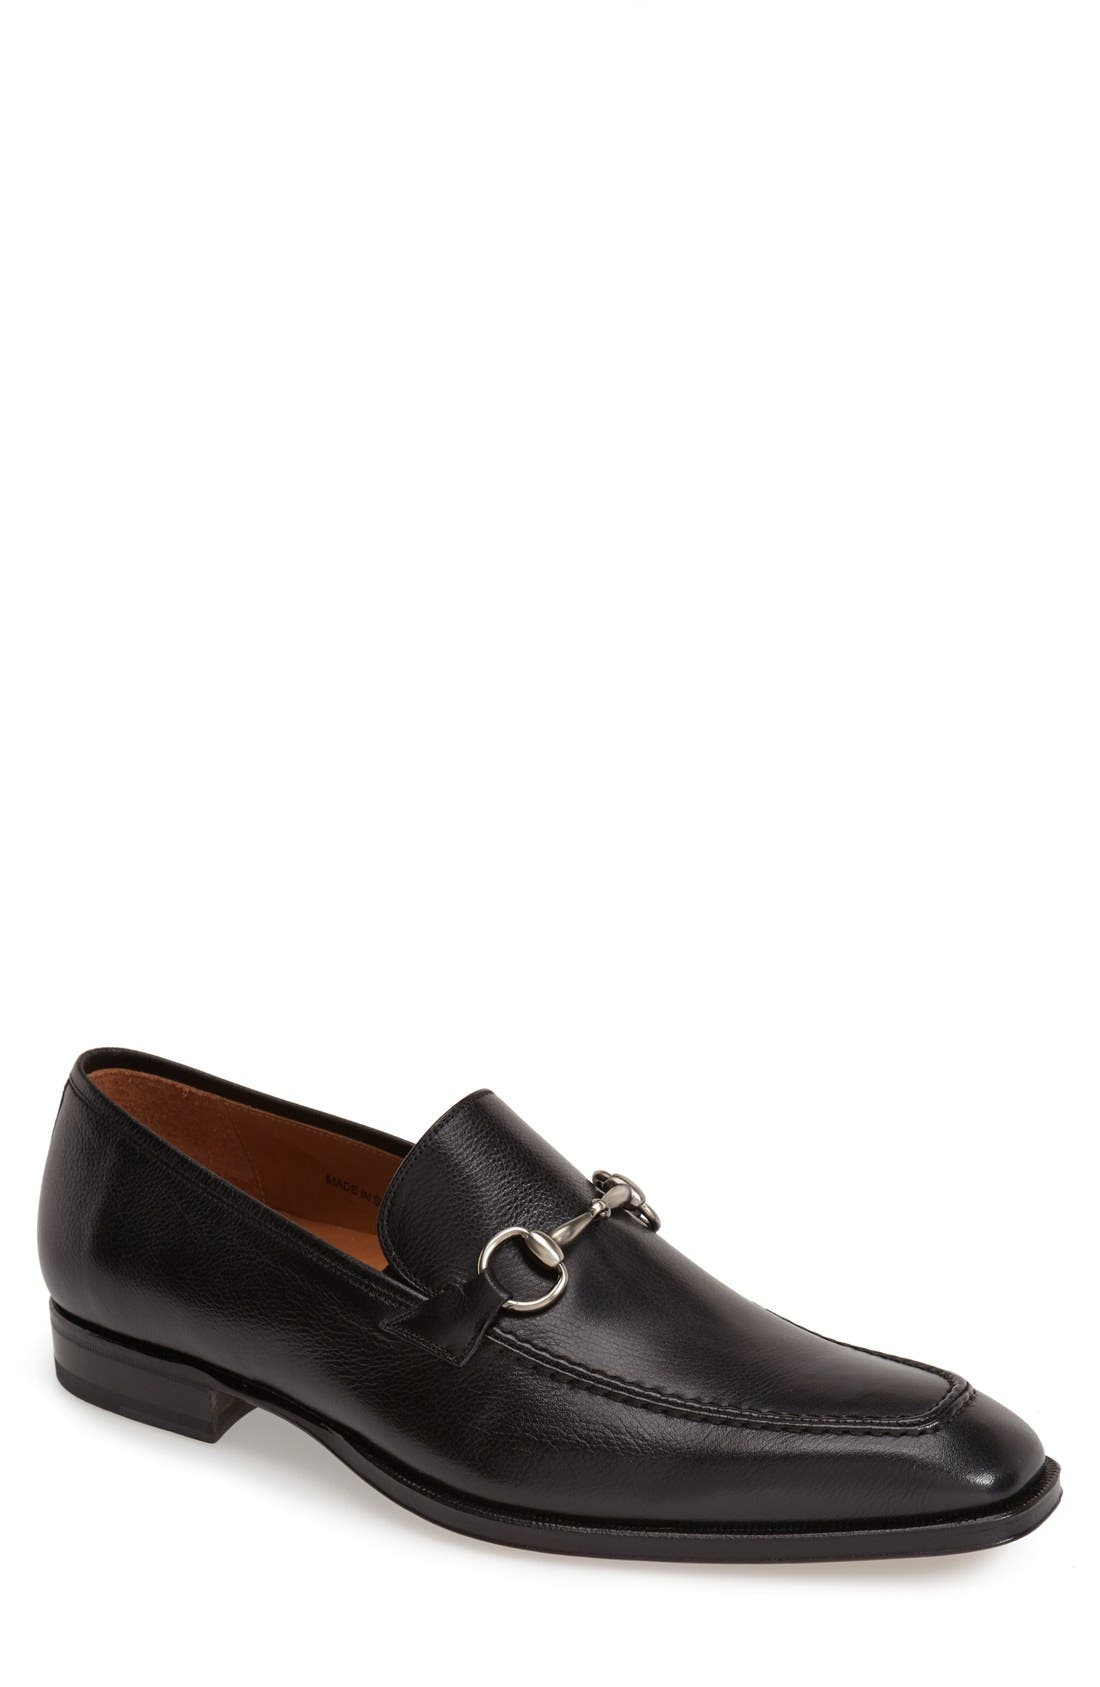 'Tours' Leather Bit Loafer,                         Main,                         color, BLACK